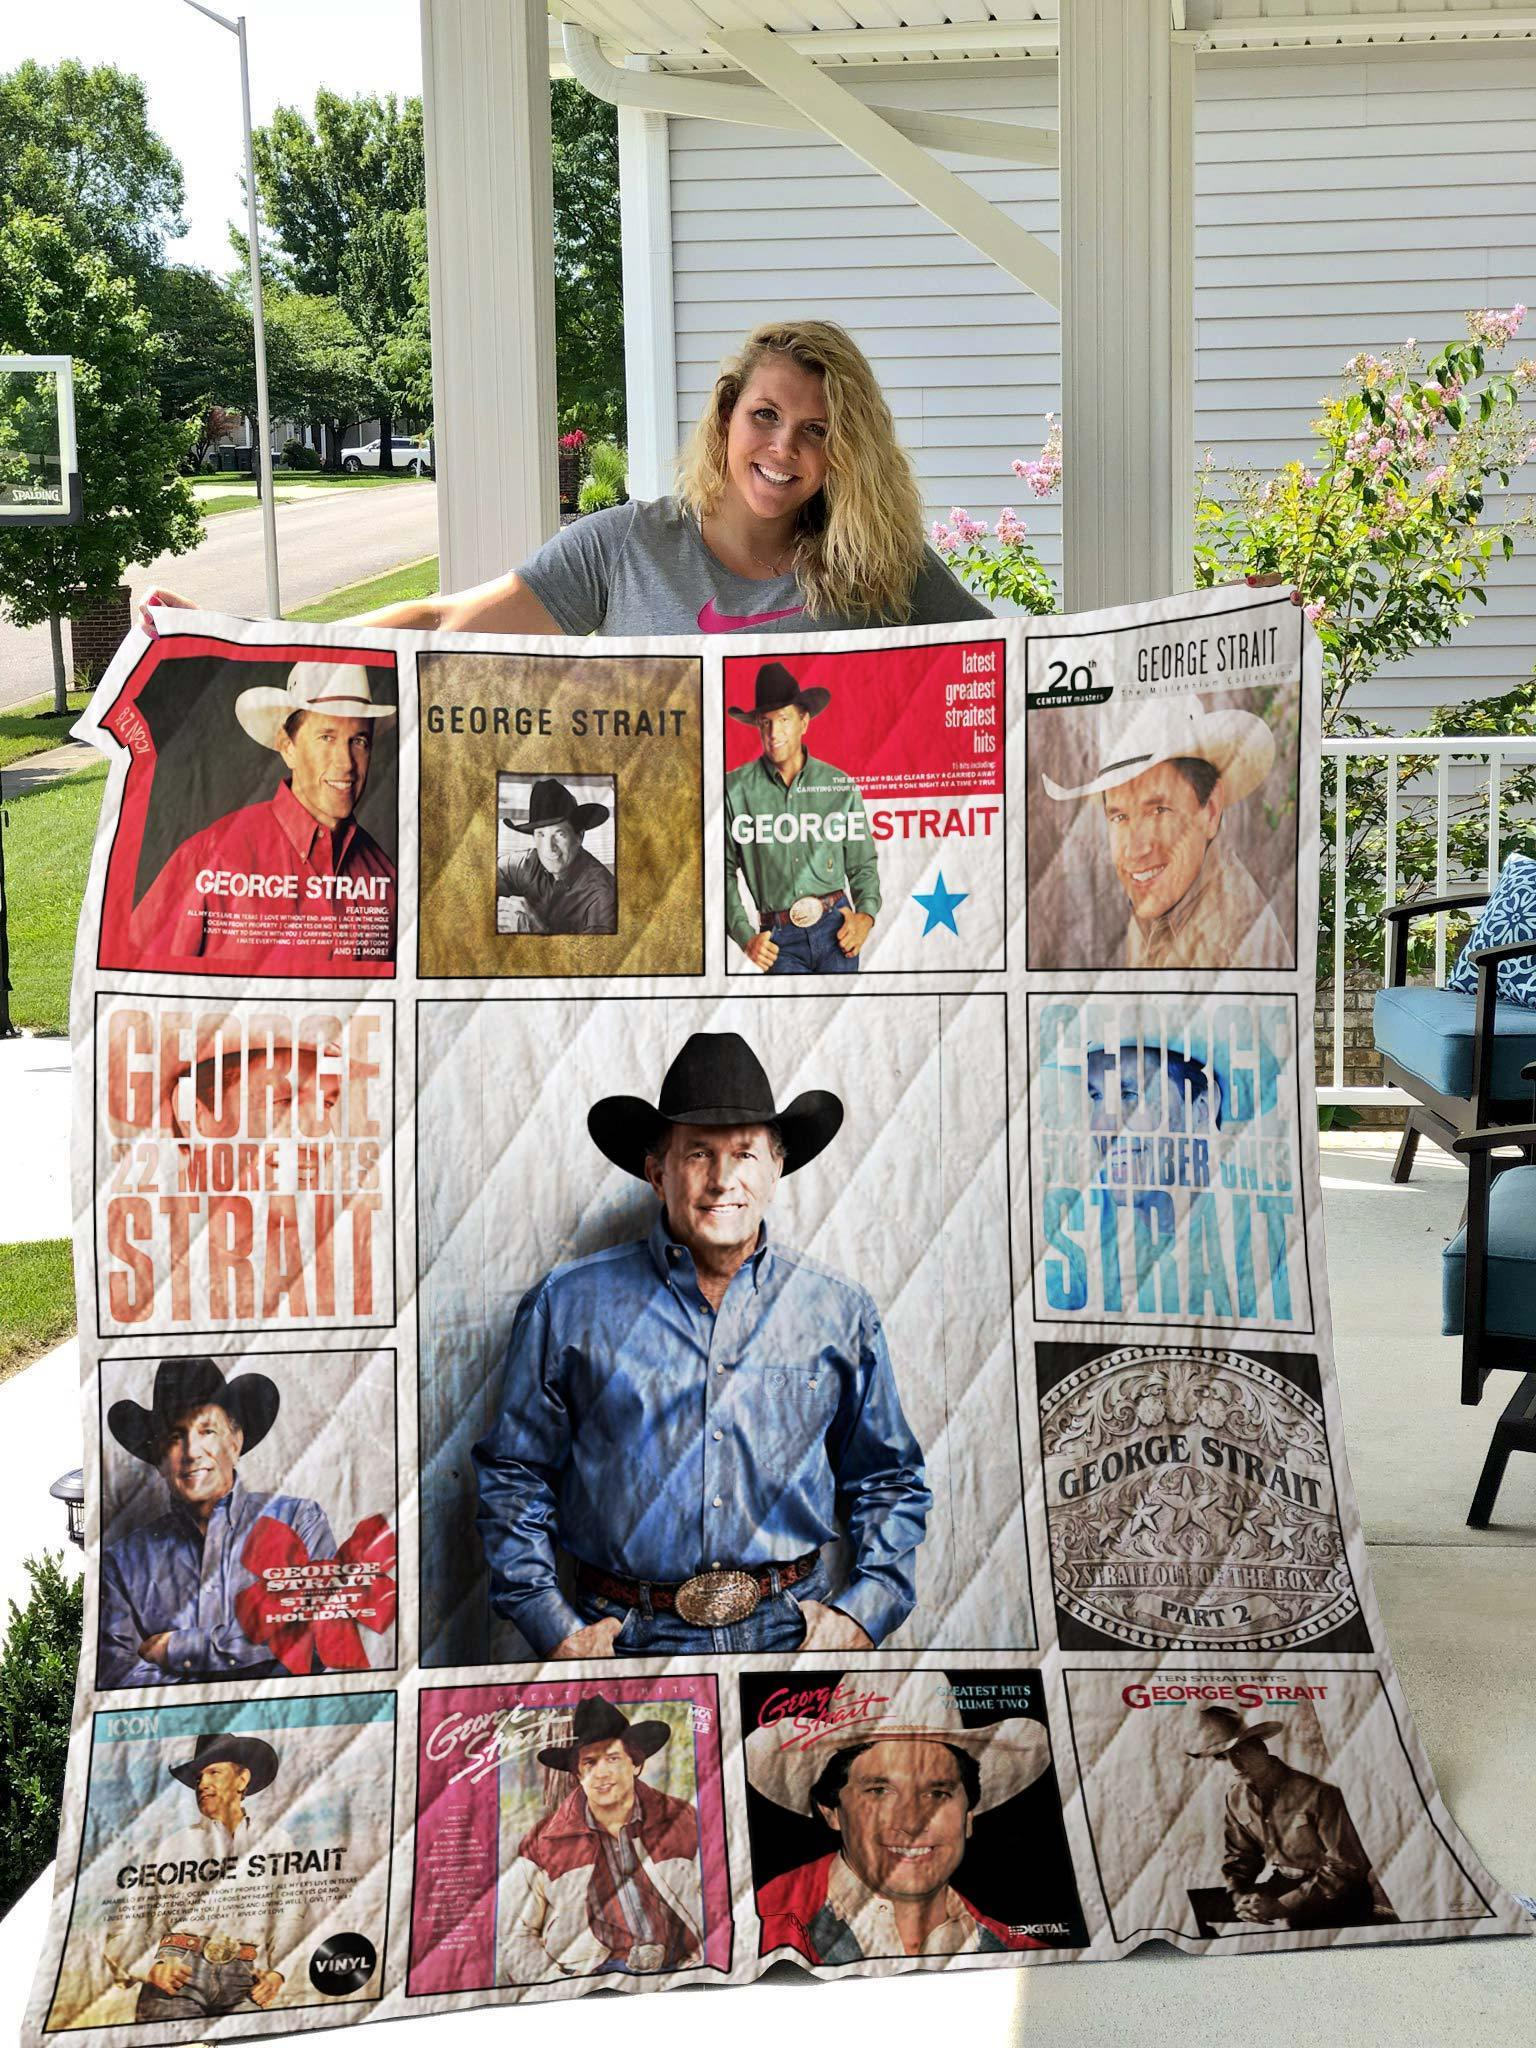 George strait complication albums quilt 4